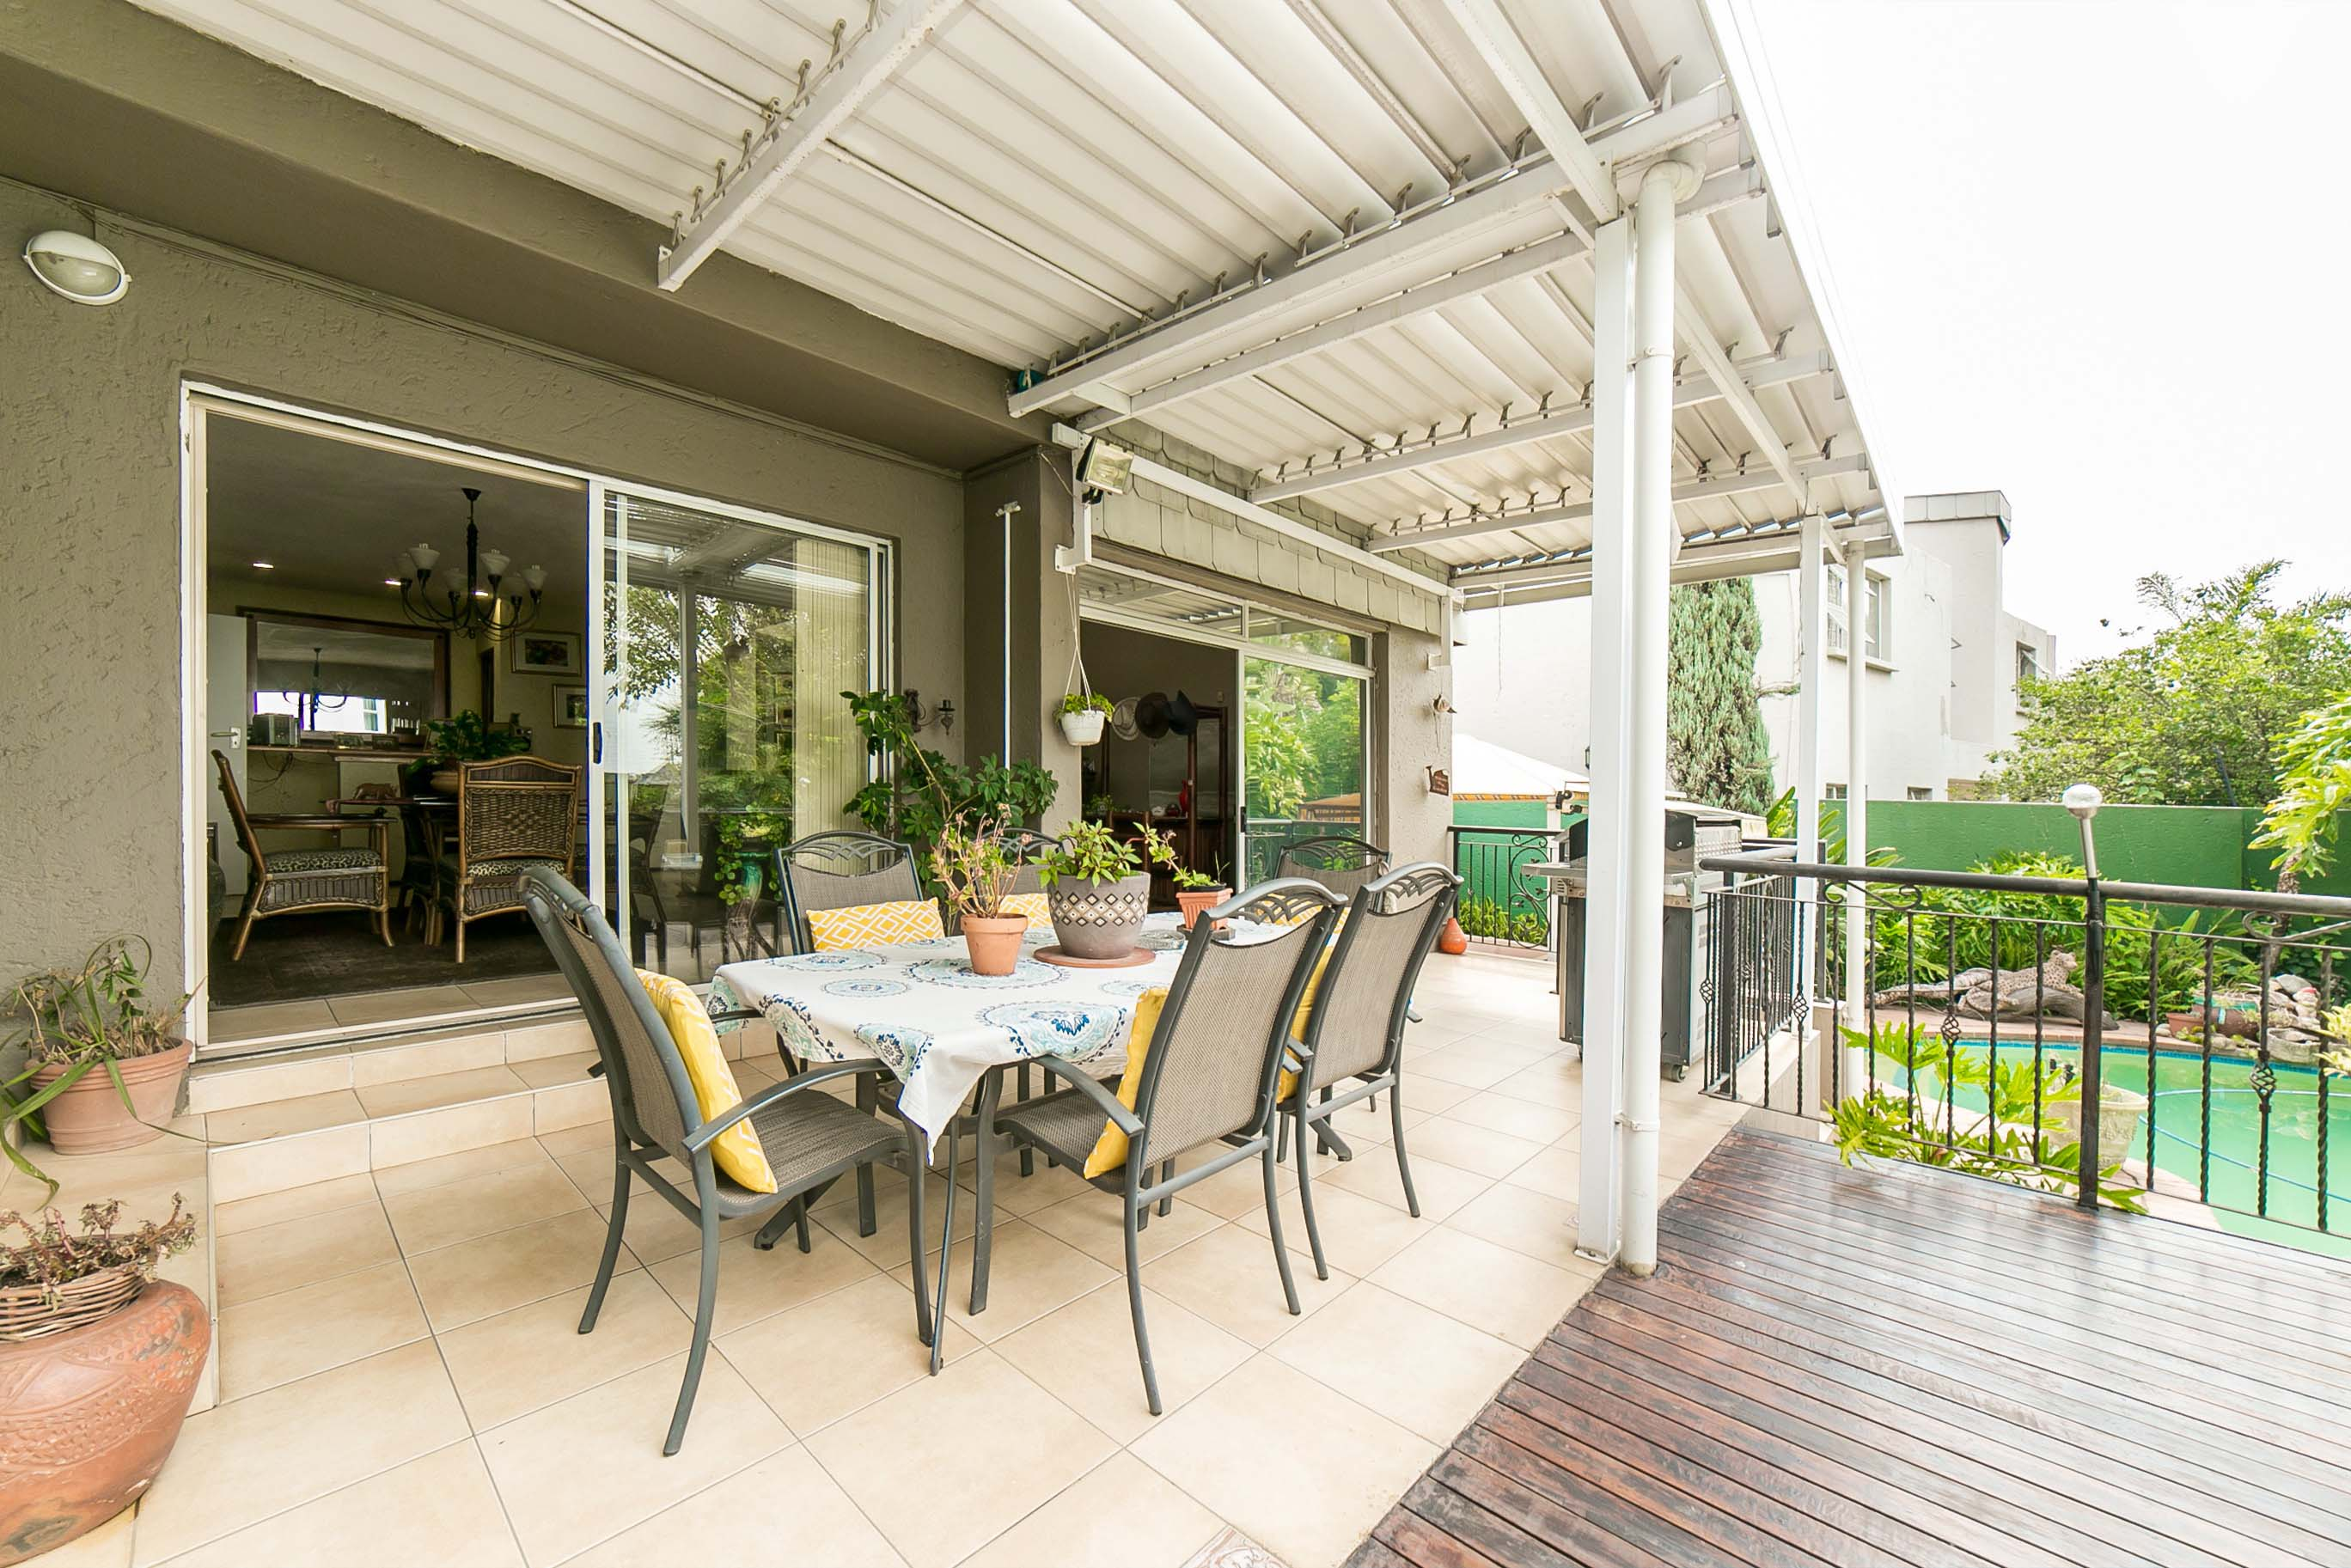 4 Bedroom House for sale in Lonehill ENT0082001 : photo#30